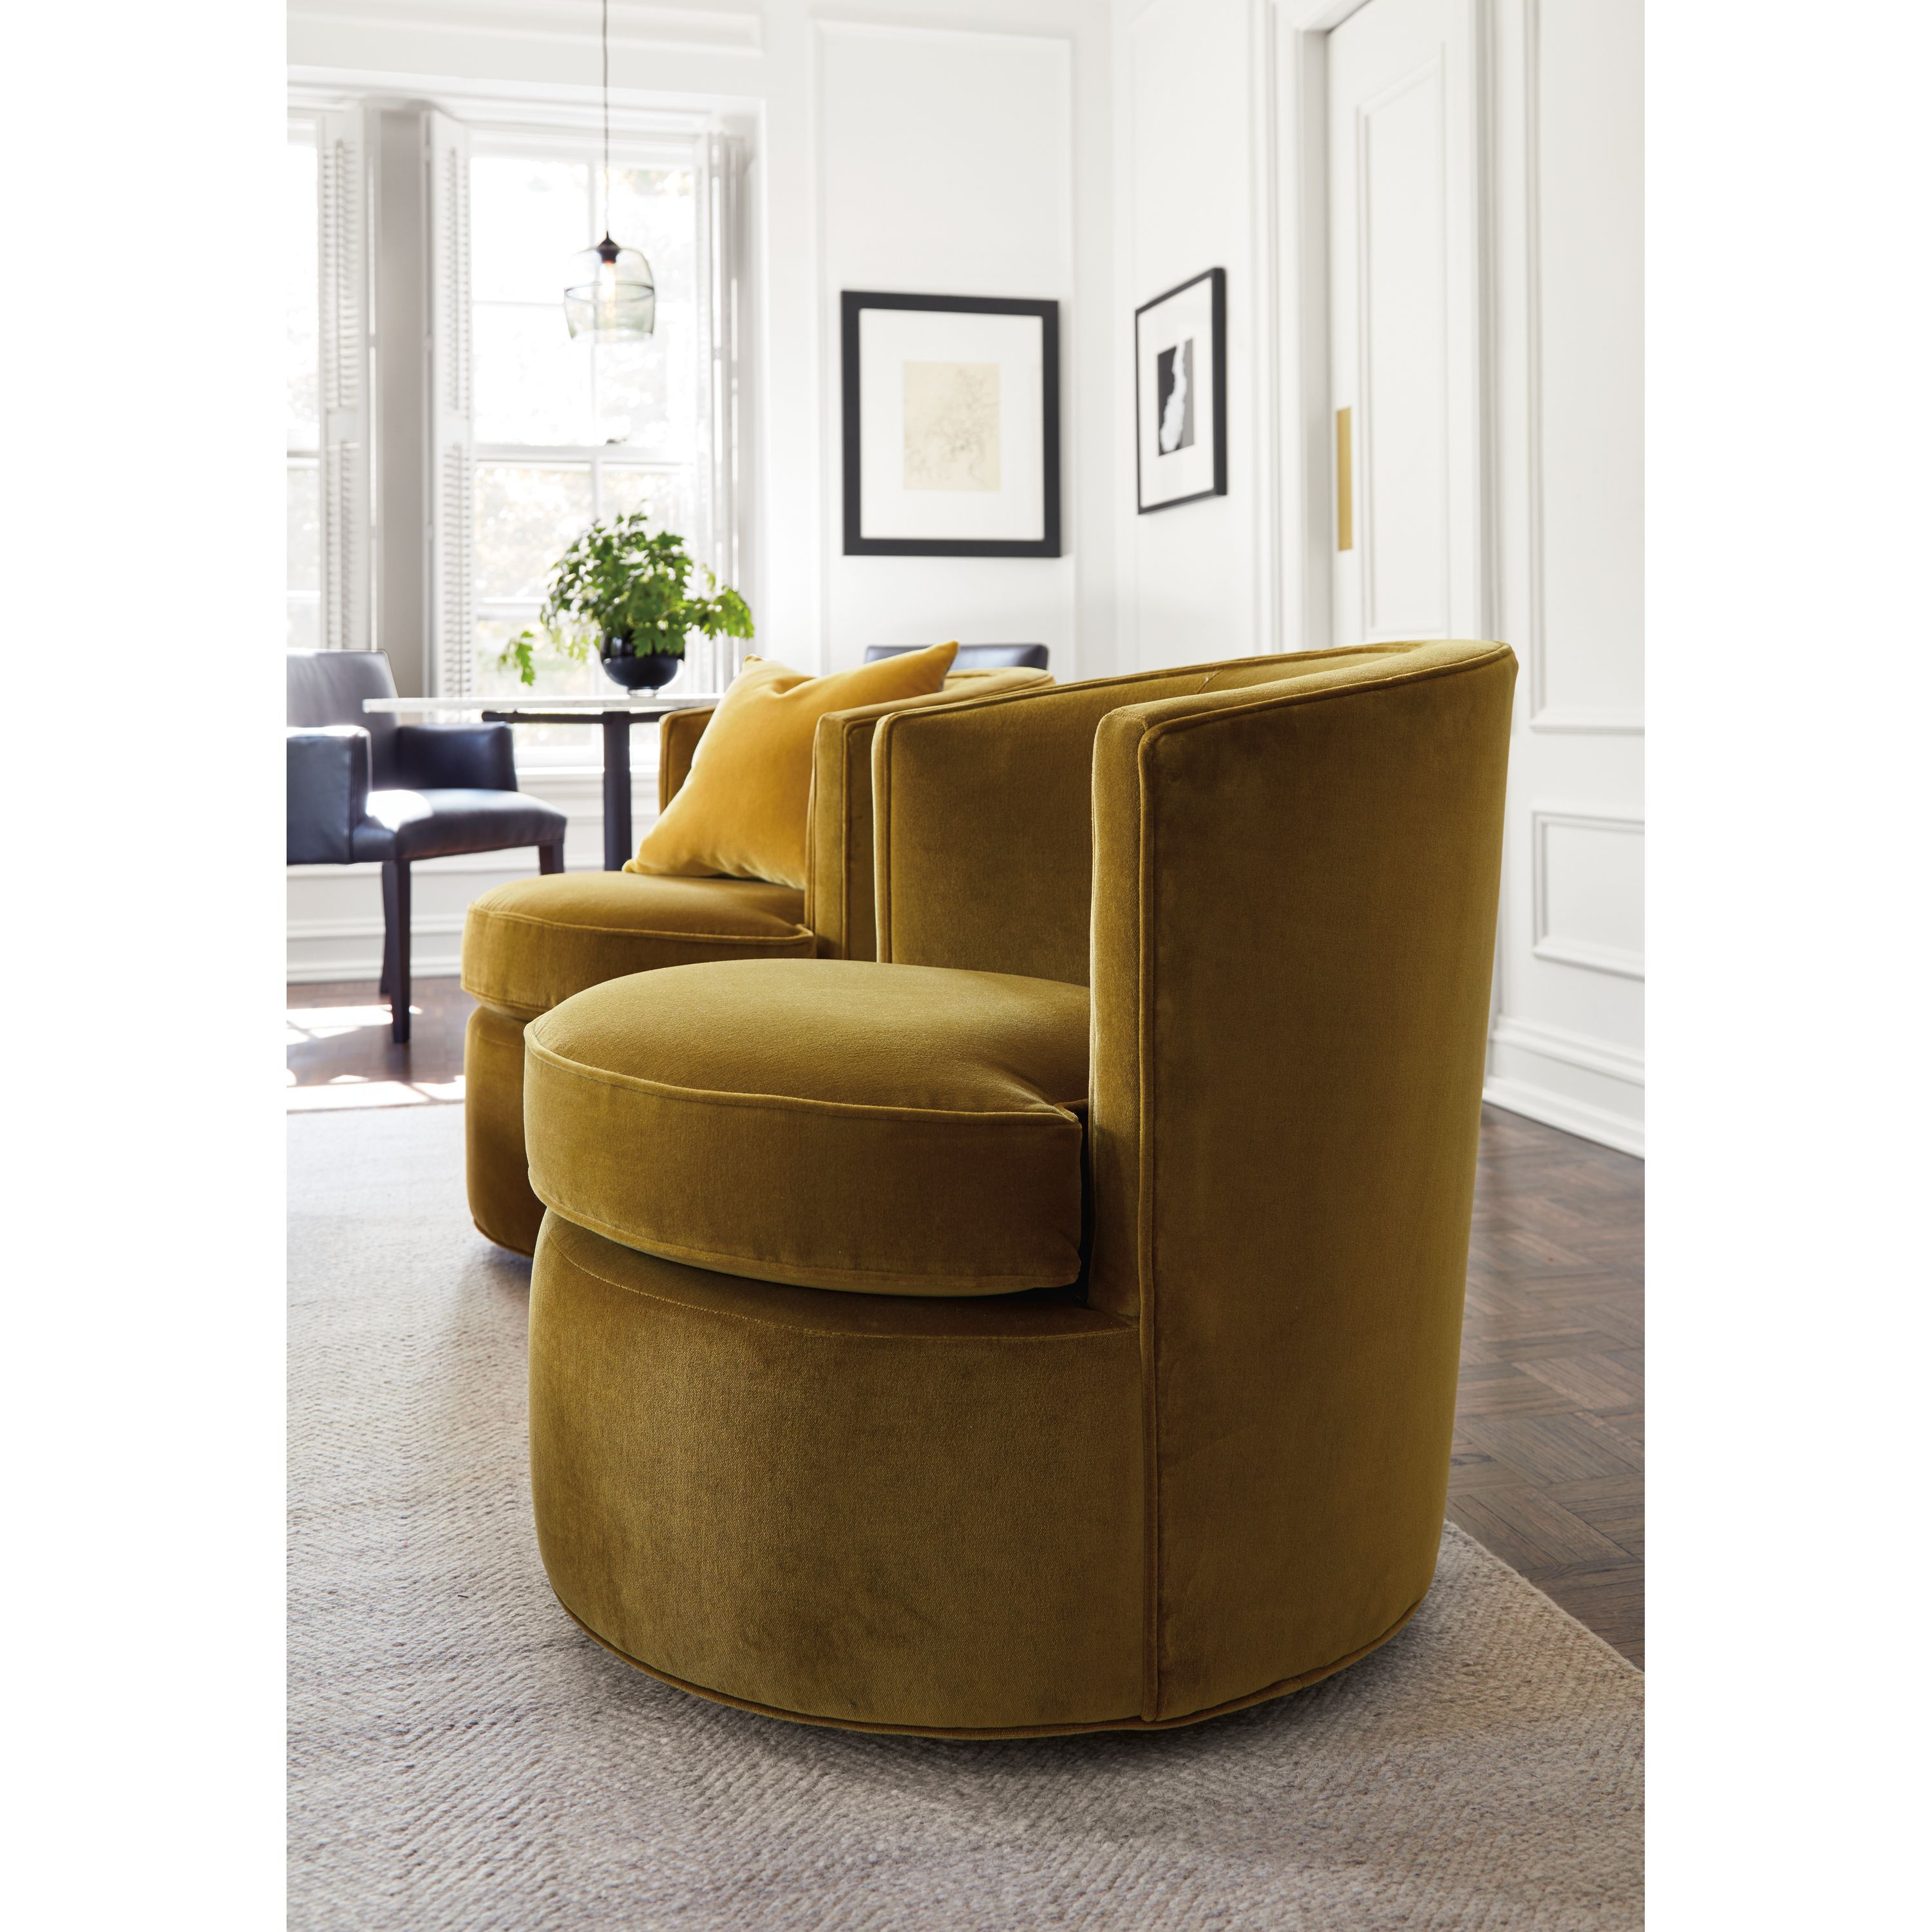 Otis Swivel Chair Modern Accent Lounge Chairs Modern Living Room Furniture Room Board Swivel Chair Living Room Modern Furniture Living Room Modern Swivel Chair